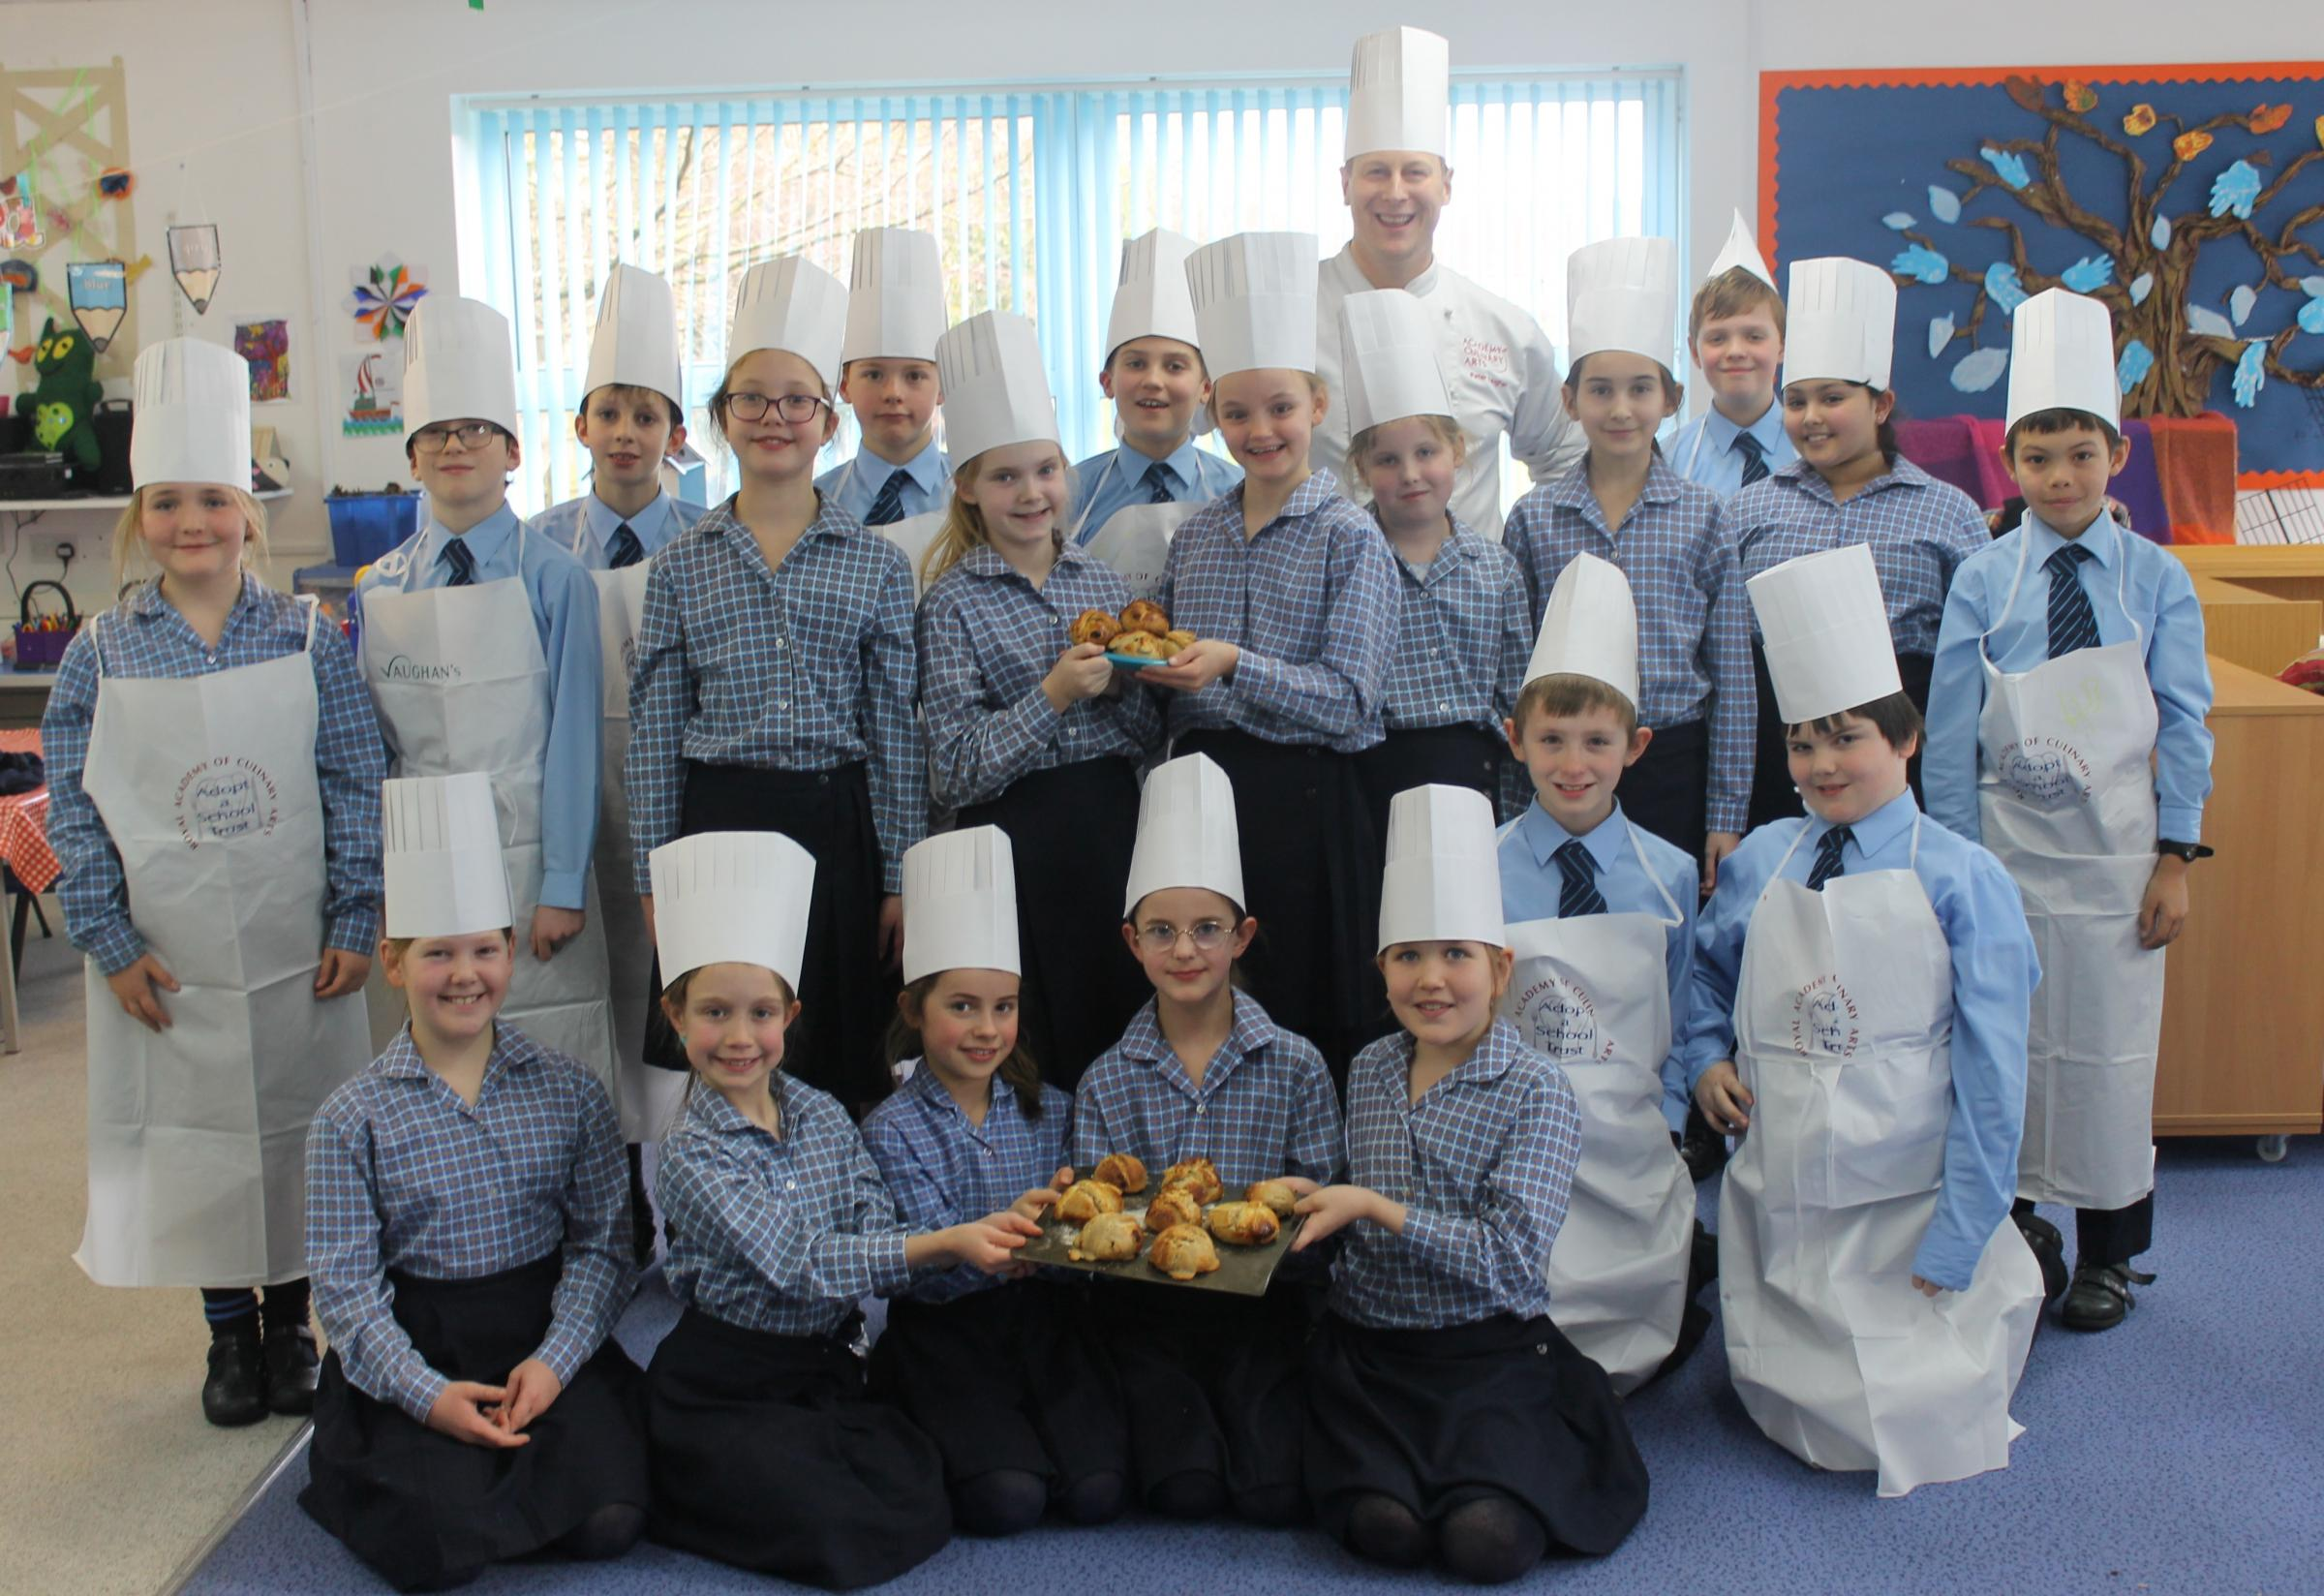 Chef Peter Vaughan teaches pupils at St Margaret's Preparatory School, Calne about bread making